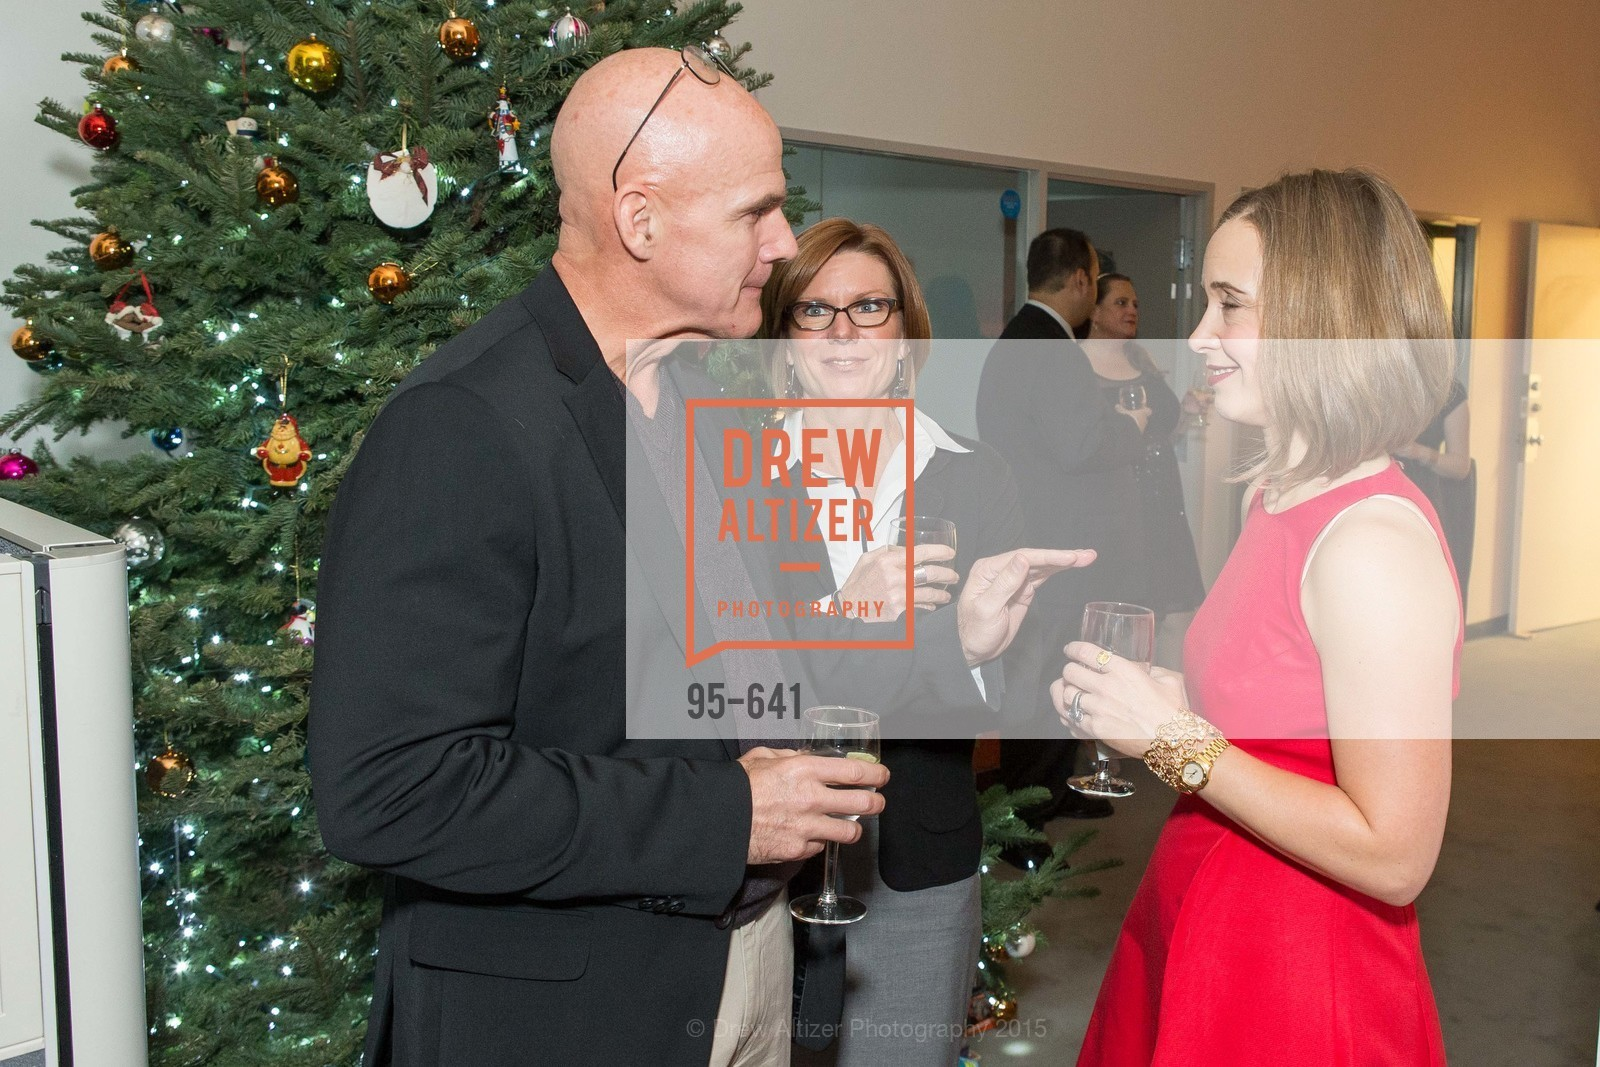 Pete Newell, Vianne Newell, Mylea Charvat, Savonix Launch Celebration and Toys for Tots Benefit, Savonix. 300 Broadway, Suite 14, December 10th, 2015,Drew Altizer, Drew Altizer Photography, full-service agency, private events, San Francisco photographer, photographer california